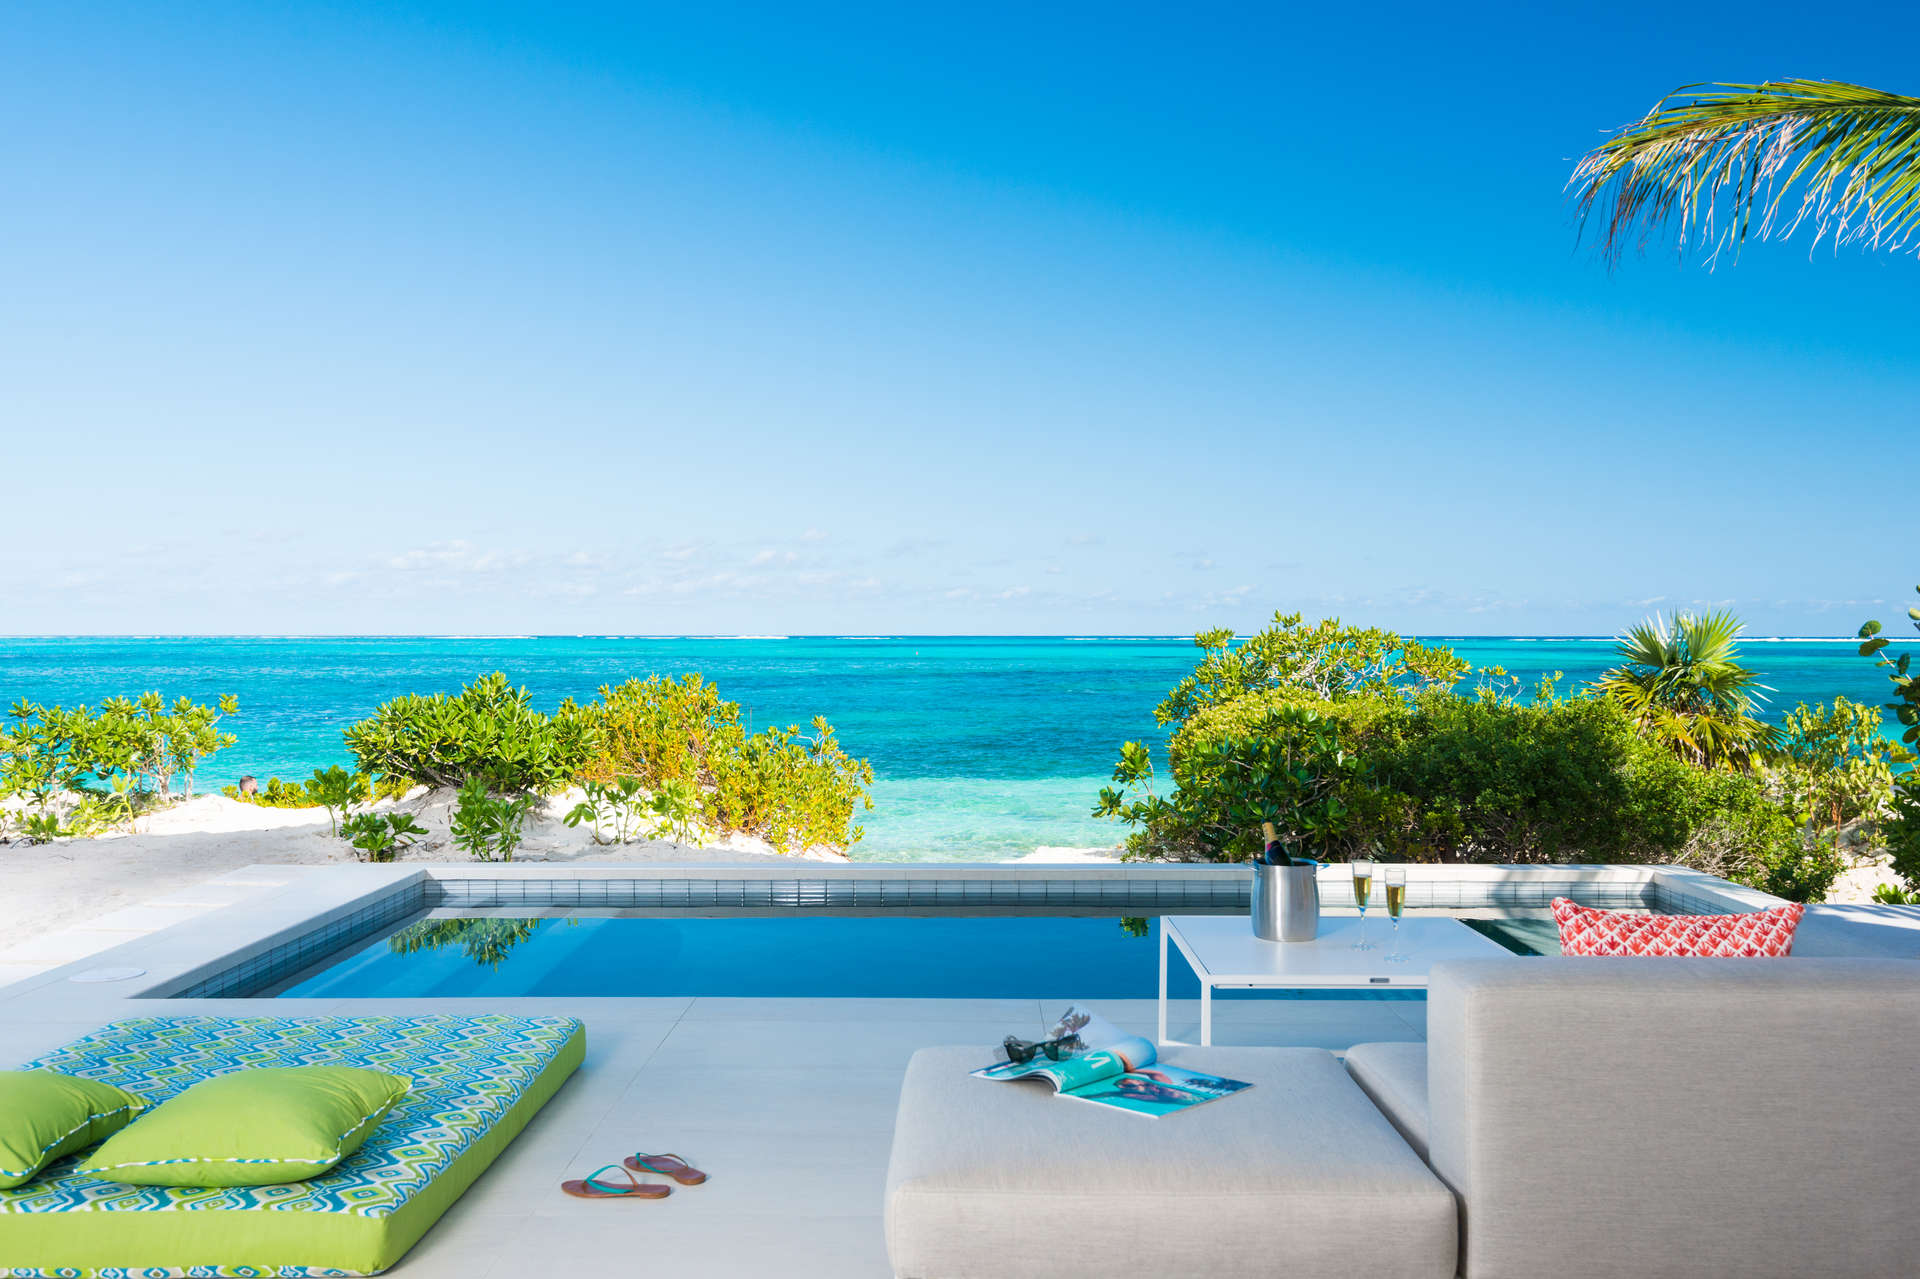 Luxury villa rentals caribbean - Turks and caicos - Providenciales - Grace bay club - Sundog | The Dunes - Image 1/17